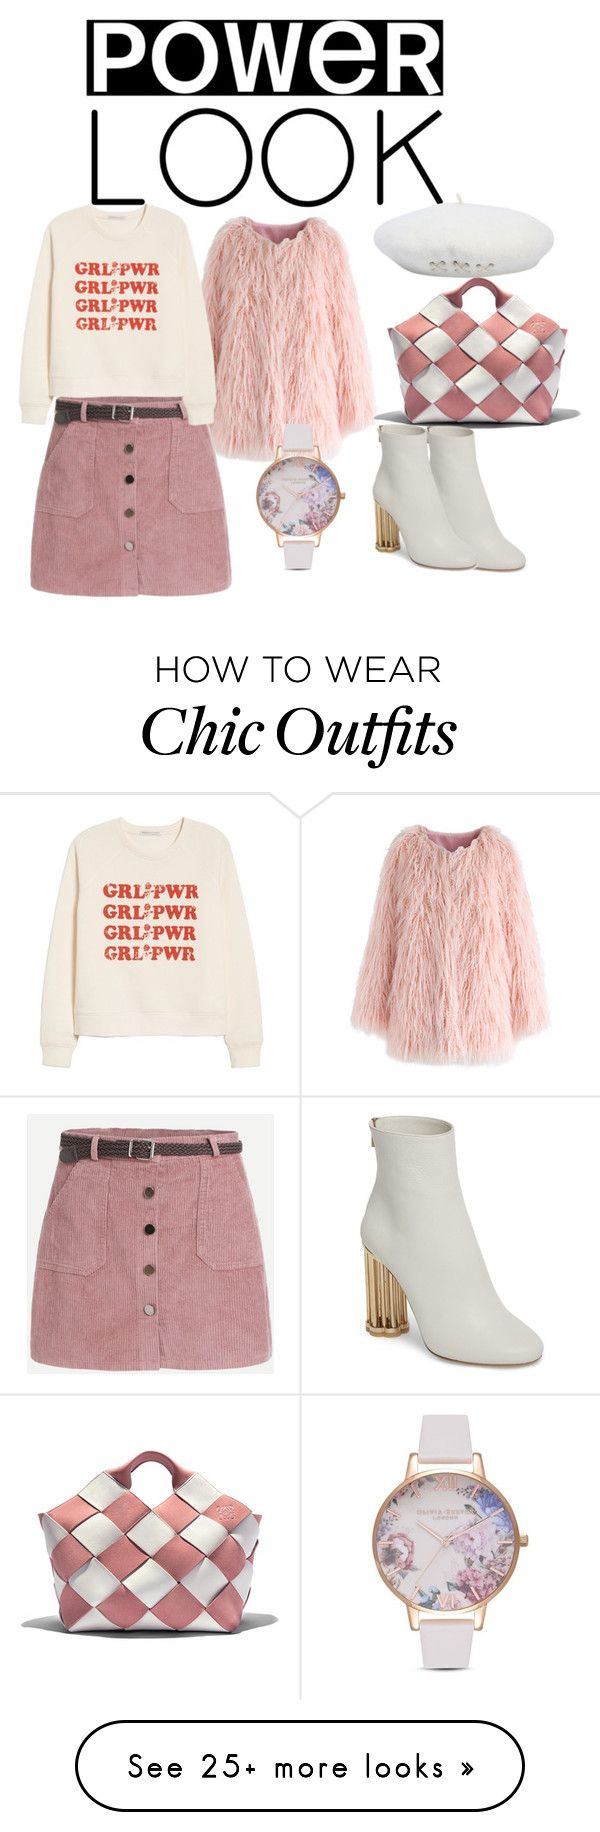 """""""Ready For Adventures"""" by ladyminafashion on Polyvore featuring Chicwish, Loewe, Rebecca Minkoff, Salvatore Ferragamo, Olivia Burton and basketbags"""